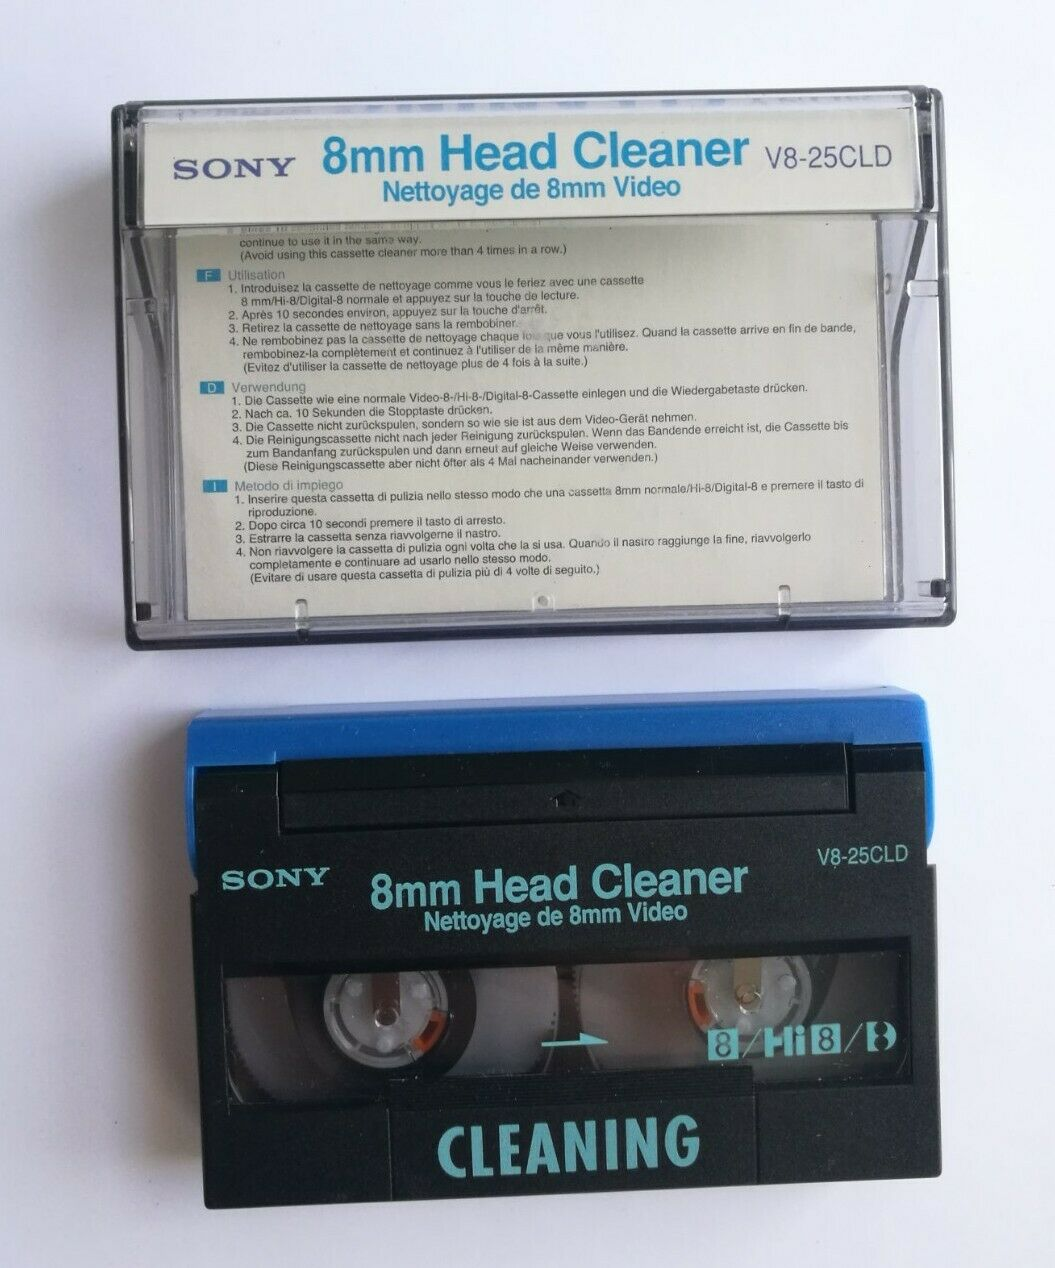 SONY V8-25CLD 8mm Hi8 Digital8 Video Head Cleaner Camcorder Cleaning Tape